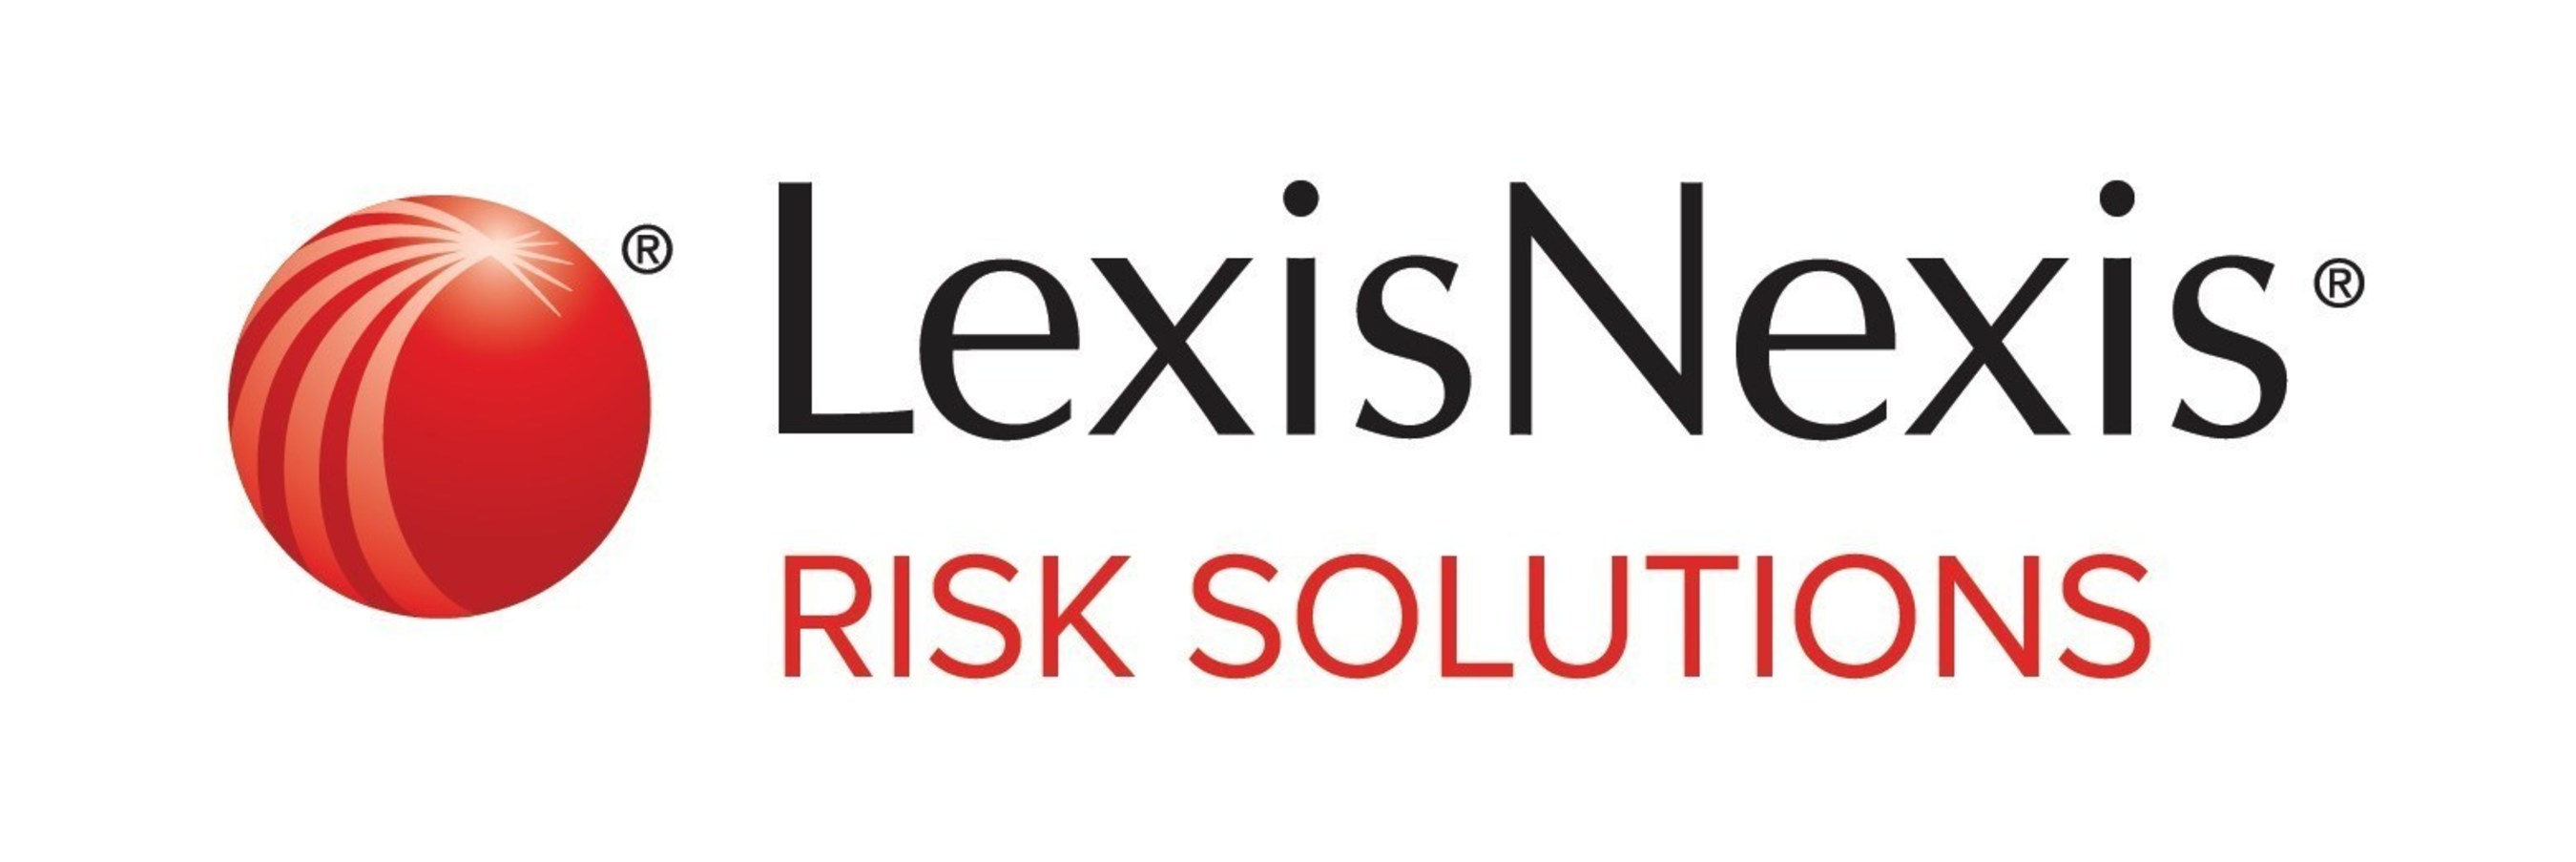 LexisNexis Risk Solutions Expert Available for Comment on the Impact of Data Breaches on Government Identity Fraud